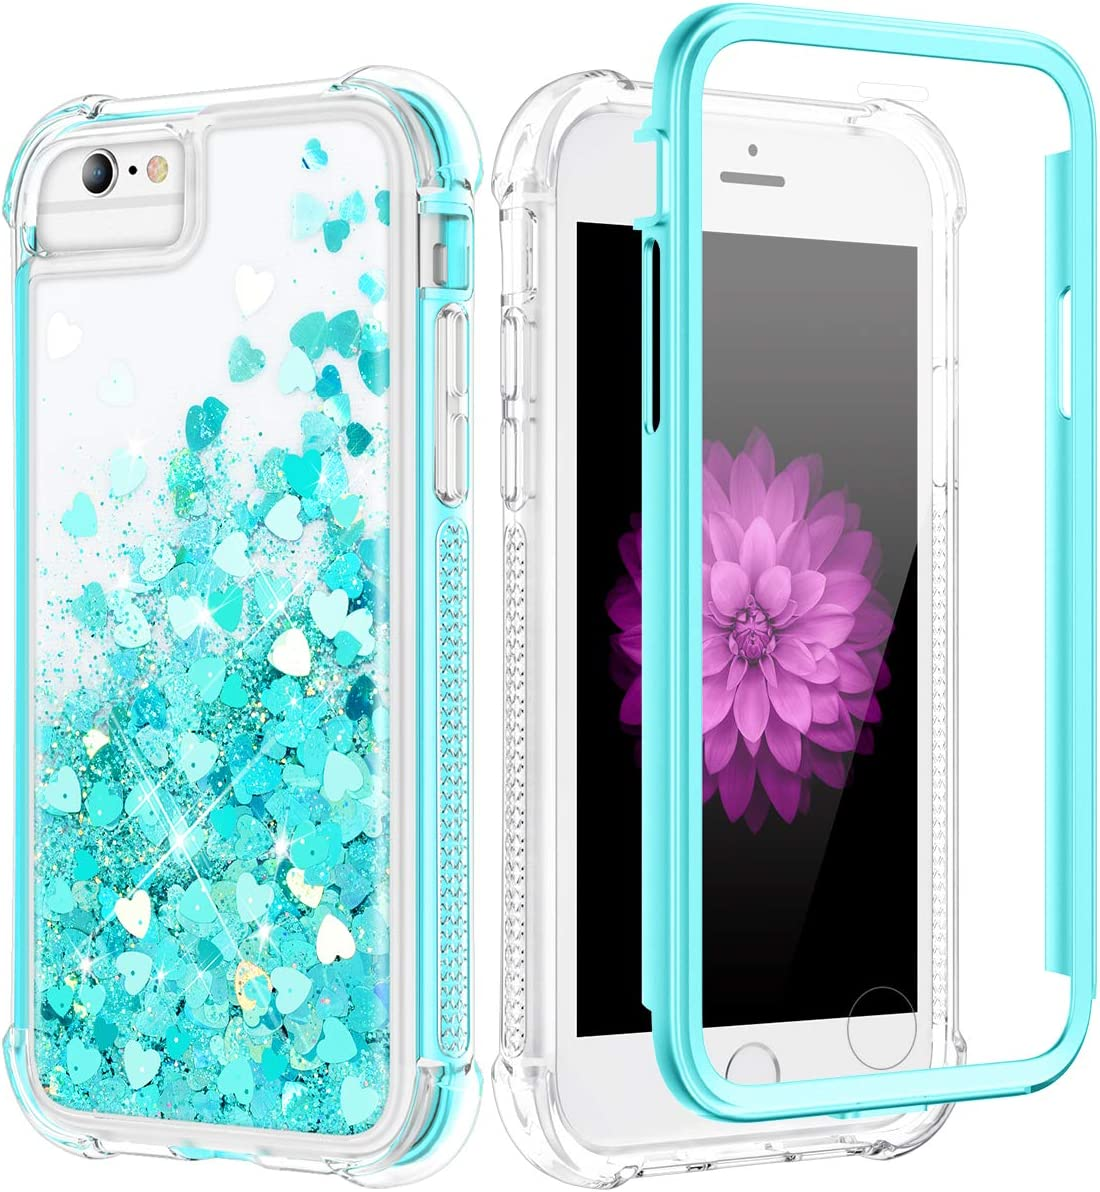 Caka Case for iPhone SE 2020, iPhone 6 6S 7 8 Glitter Case Liquid for Women Girls Bling Full Body Shockproof Love Floating Luxury Heavy Duty Clear Case for iPhone 6 6S 7 8 SE 2020 (4.7 inch)(Teal)